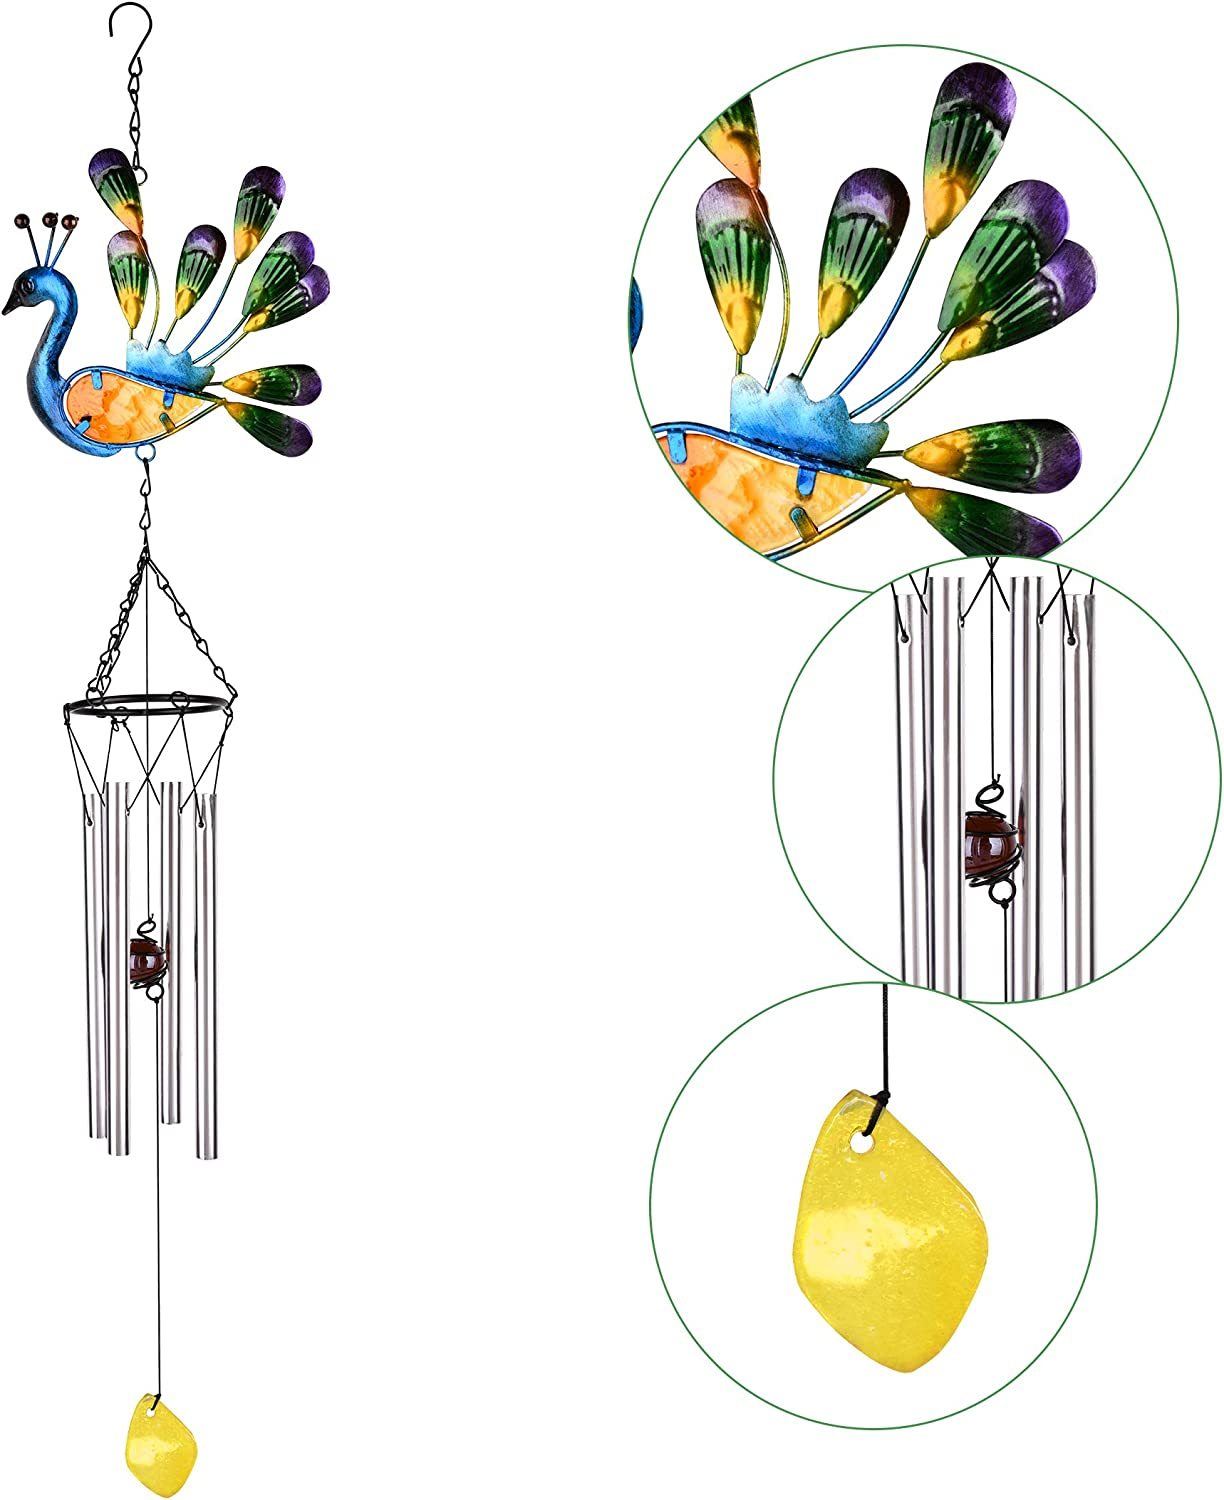 VAINECHAY Outdoor Garden Wind Chime Indoor Home Hanging Wind Chimes Yard Metal Decoration Peacock Chimes Gift for Mom Wife Grandma